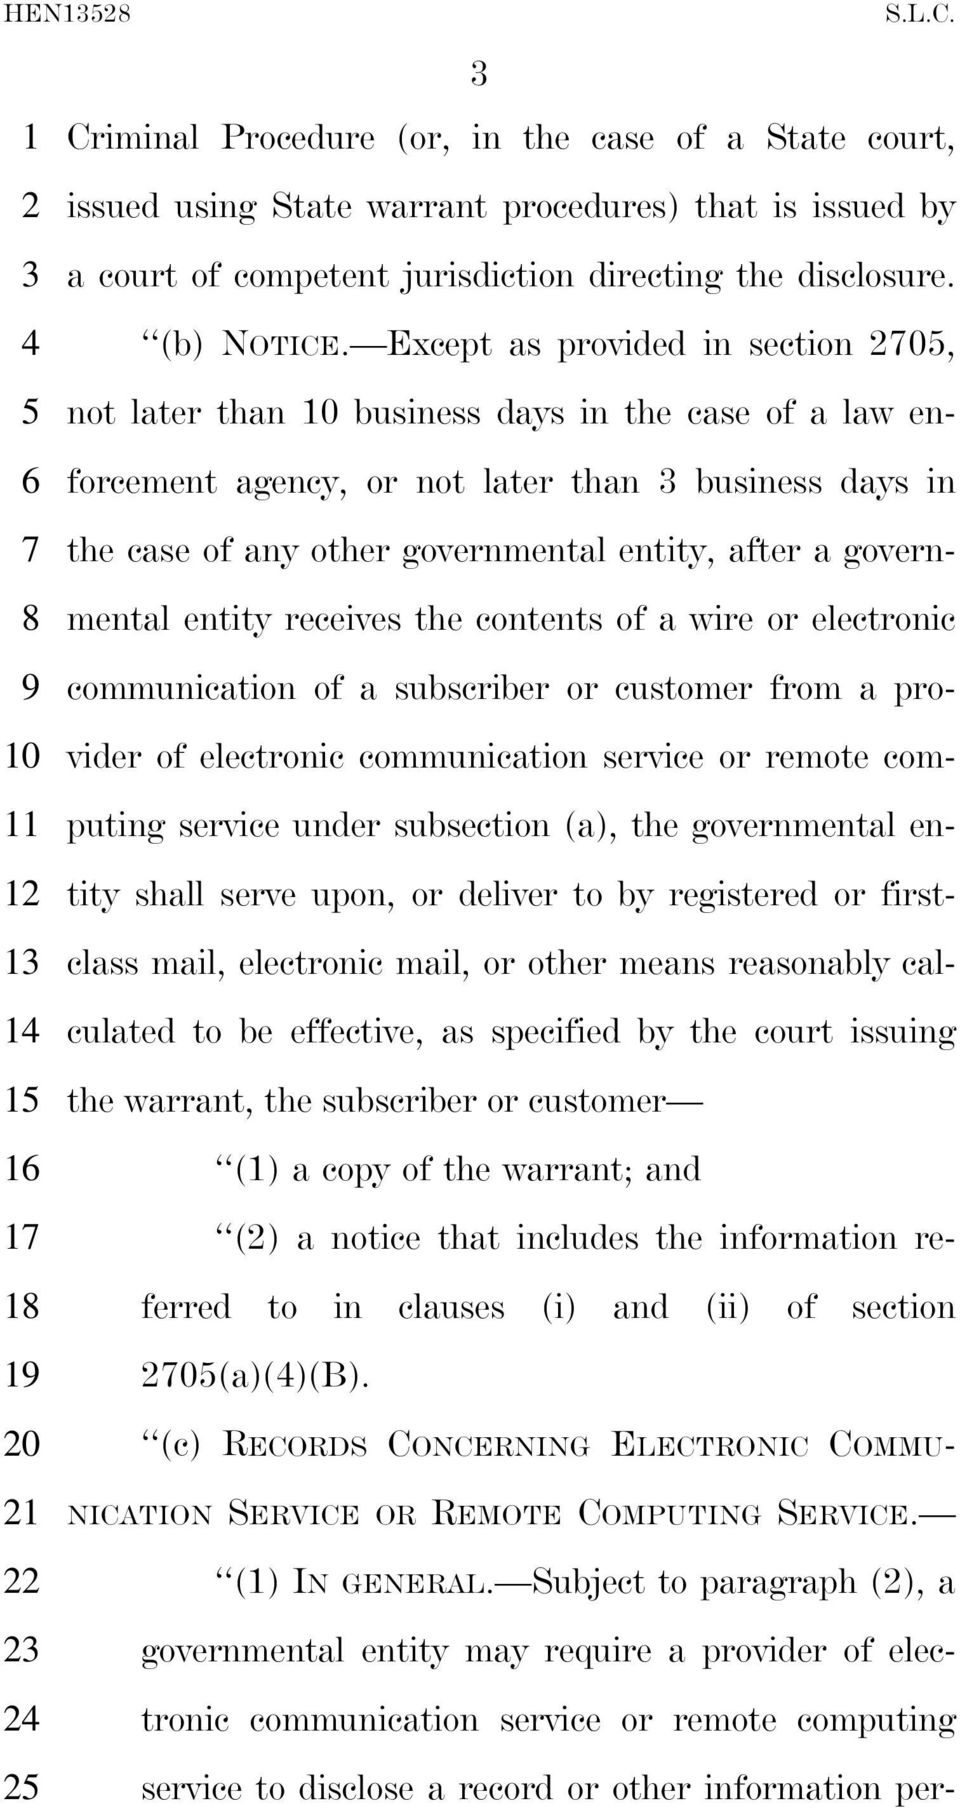 mental entity receives the contents of a wire or electronic communication of a subscriber or customer from a pro- vider of electronic communication service or remote com- puting service under